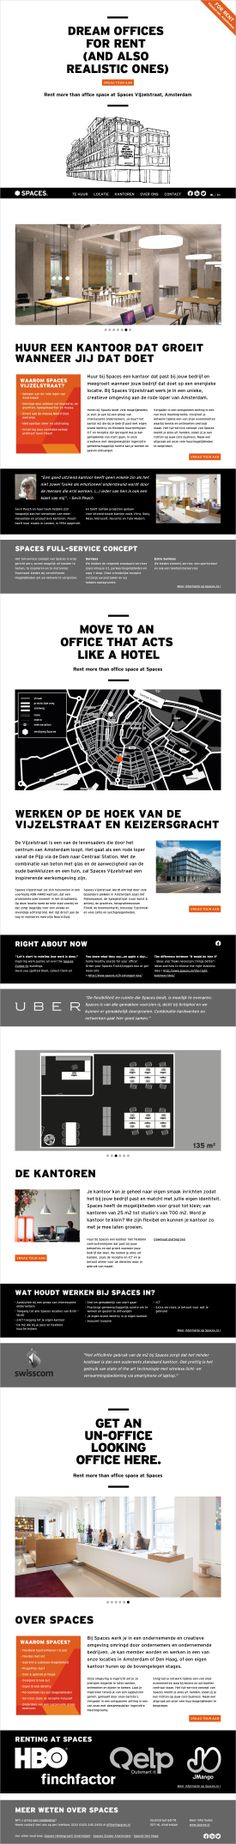 website design by www.formlab.nl